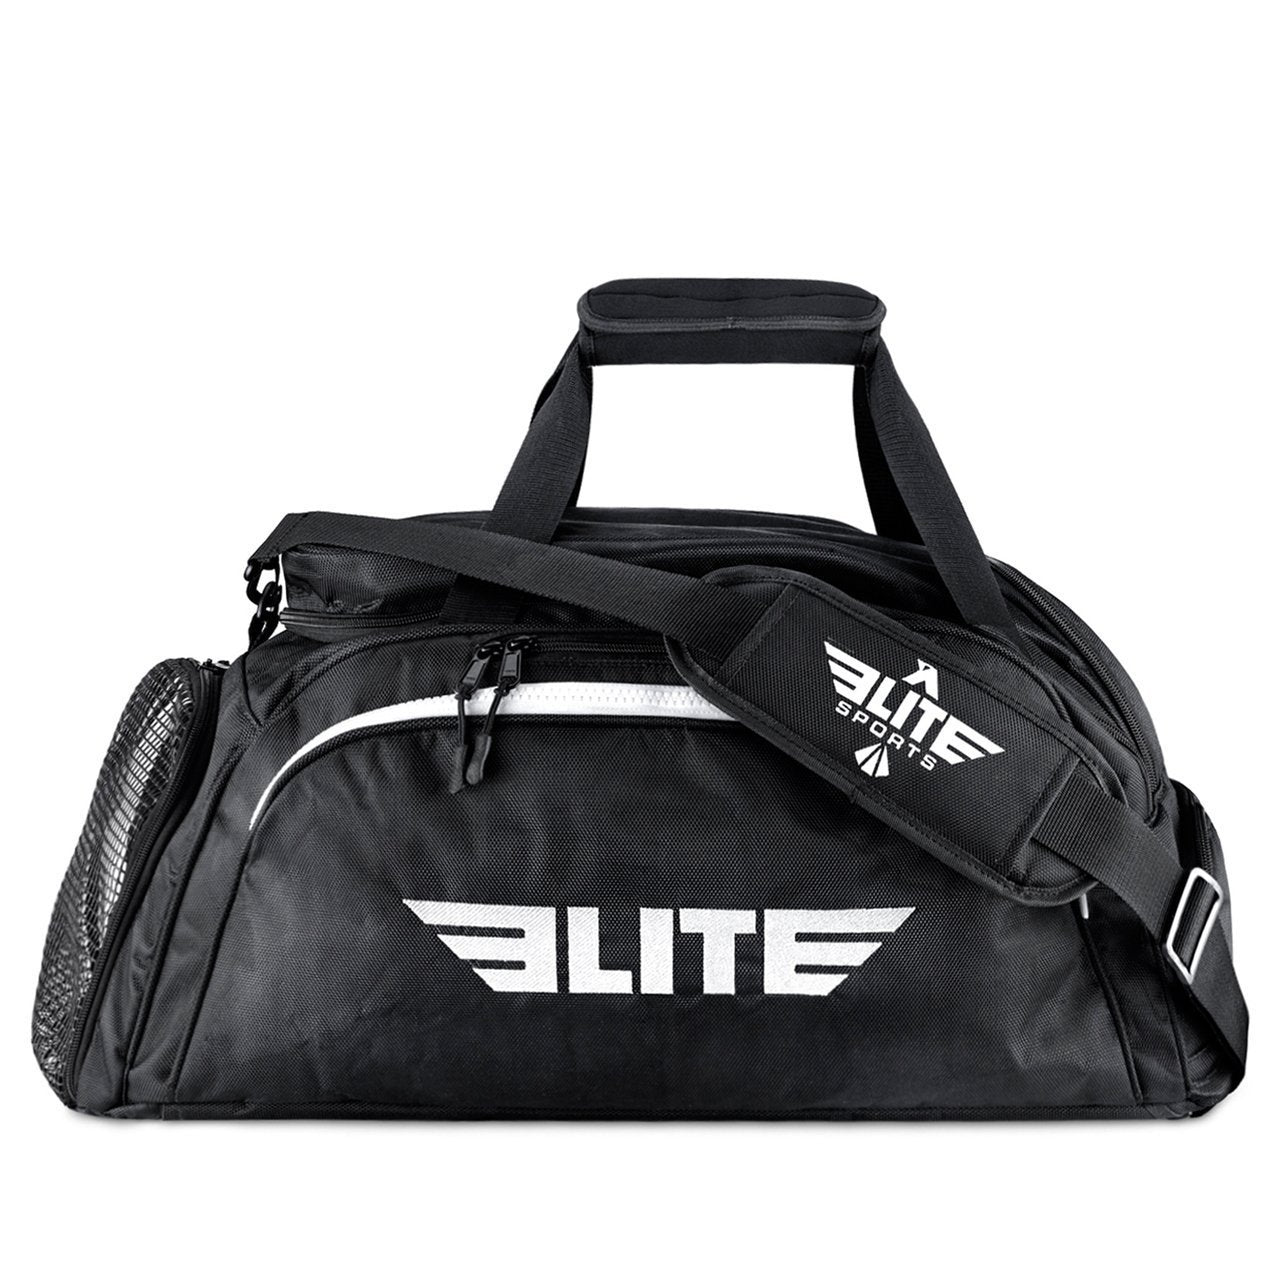 Elite Sports Warrior Series Black Large Duffel Taekwondo Gear Gym Bag & Backpack